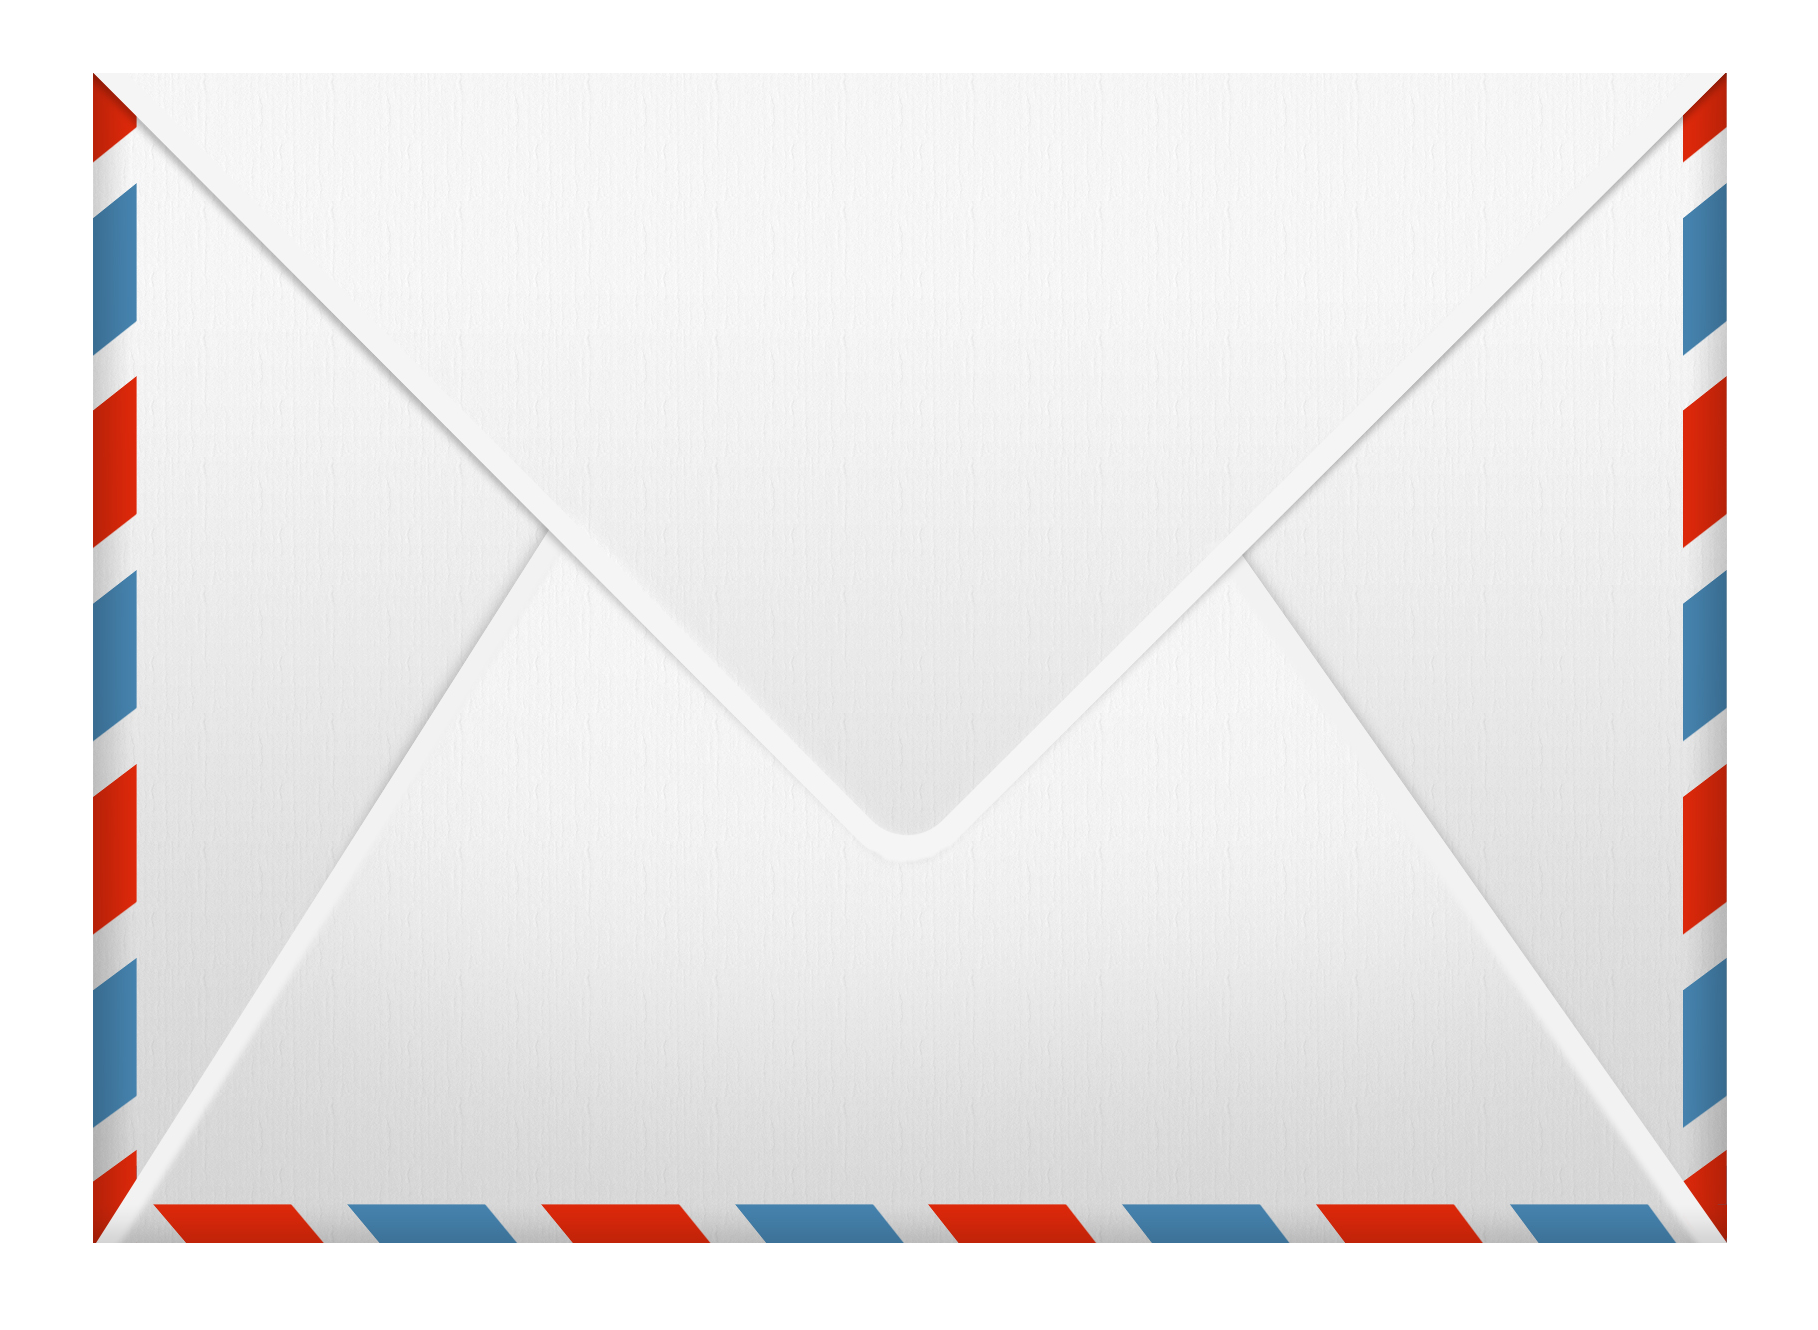 Envelope png. Image transparent best stock